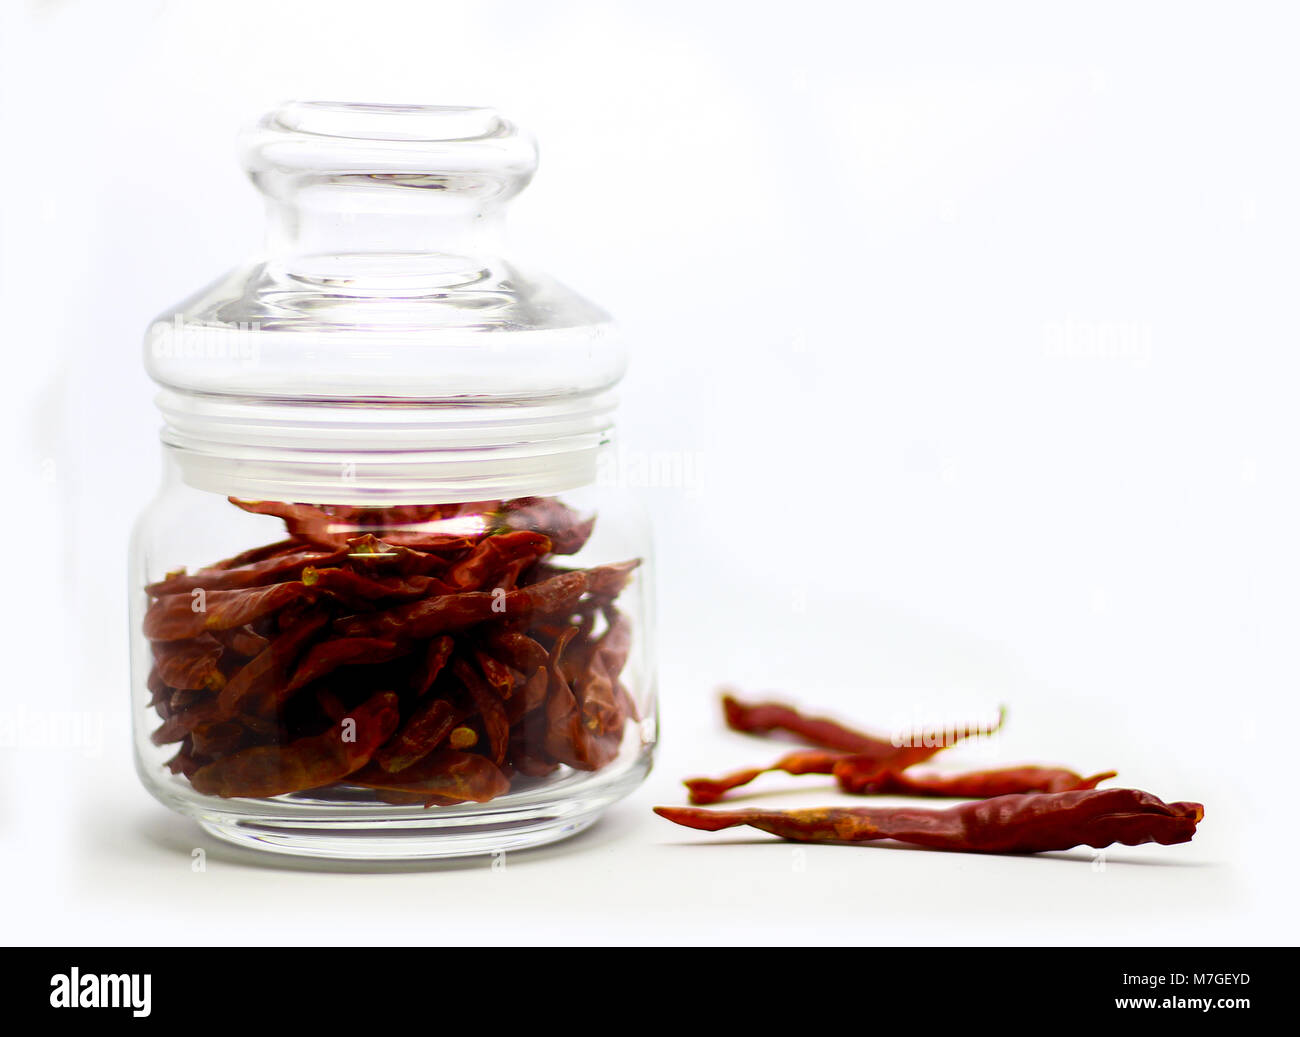 Dried Red Chilli In Glass Container in White Background - Stock Image